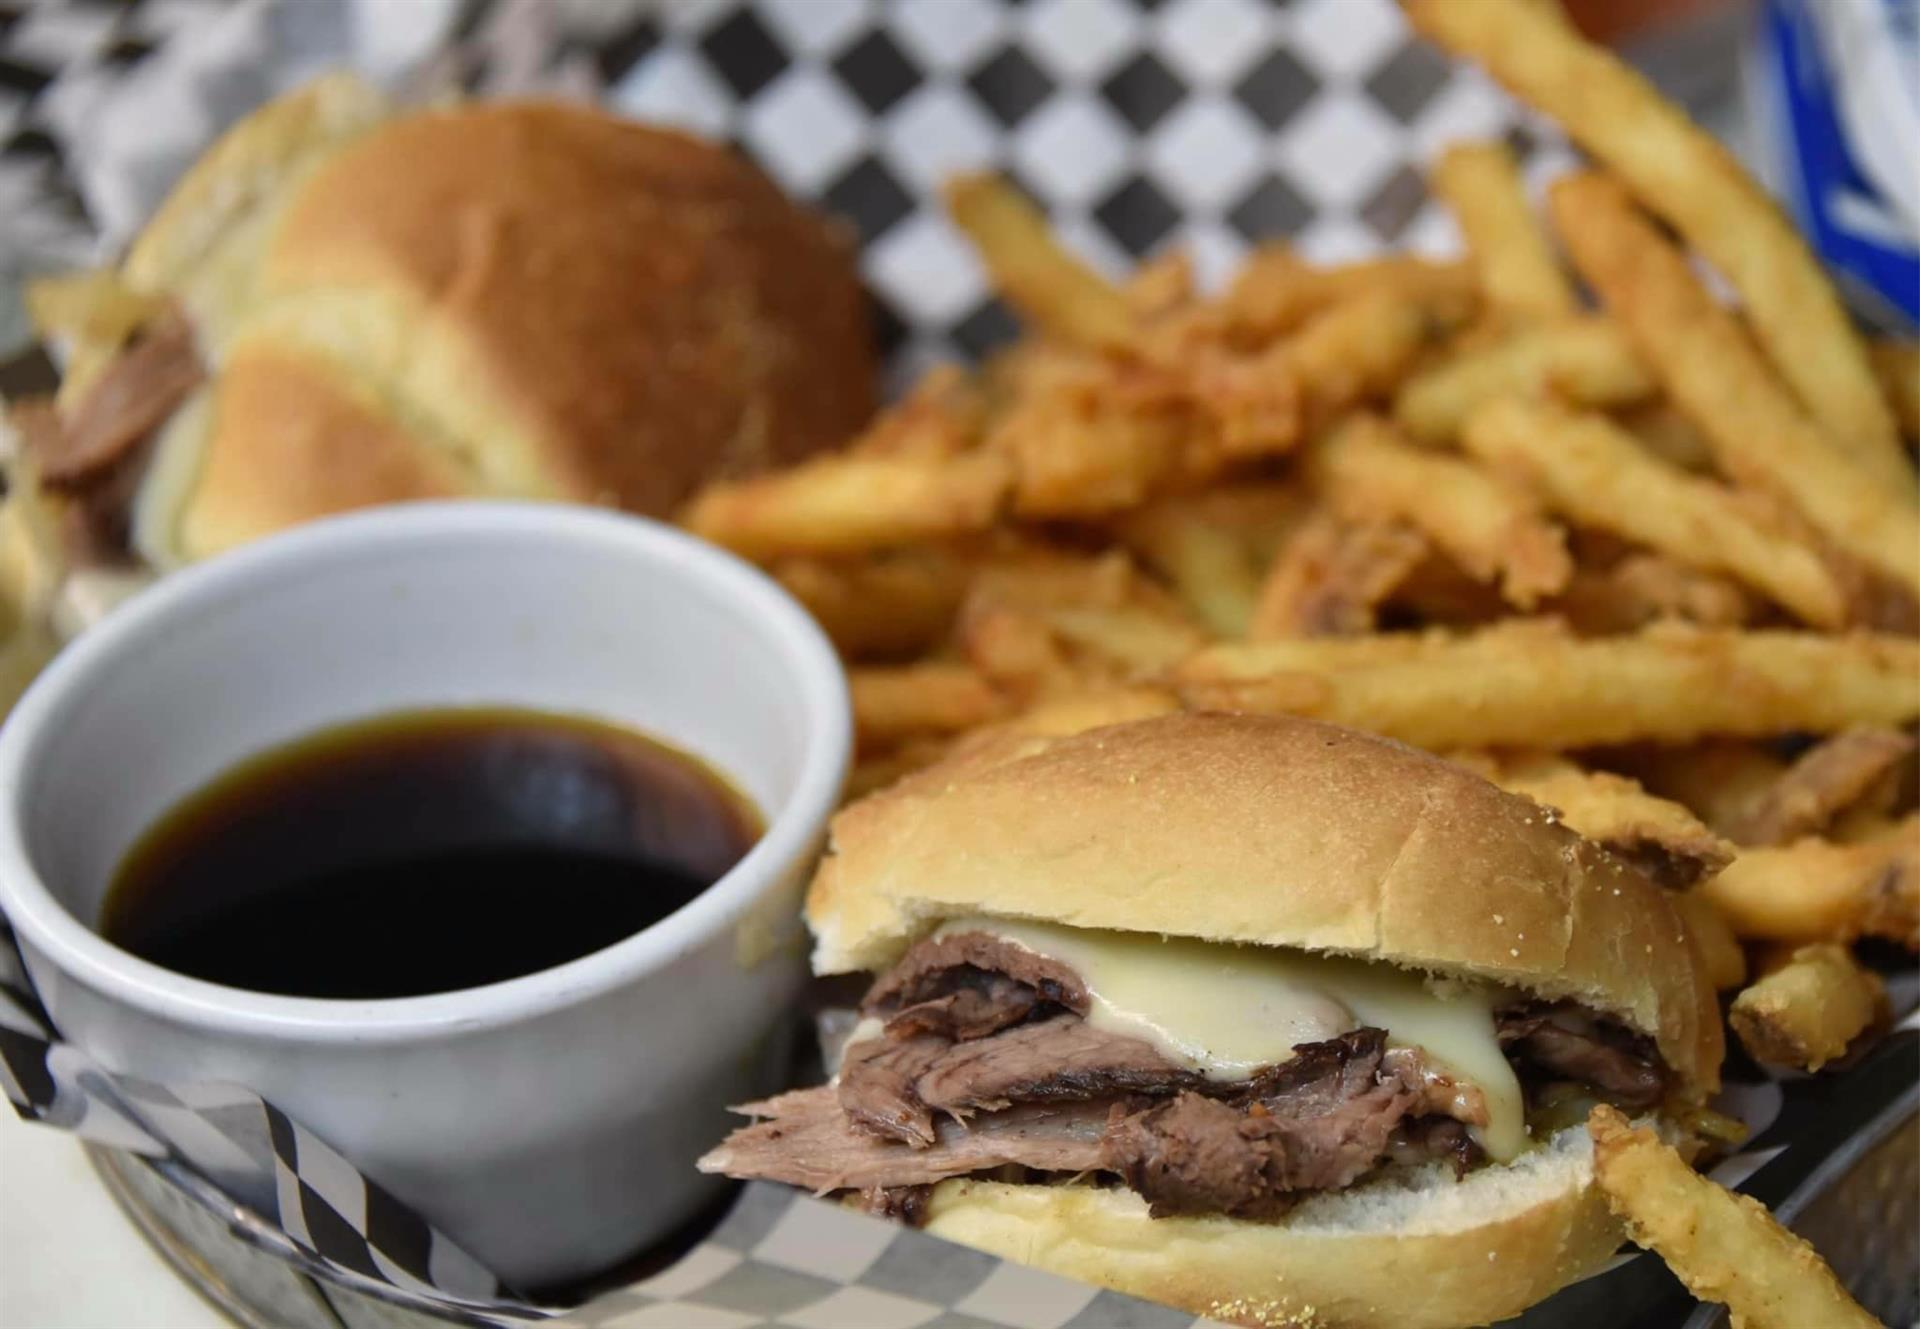 brisket with cheese sandwich, fries and a dipping sauce on the side